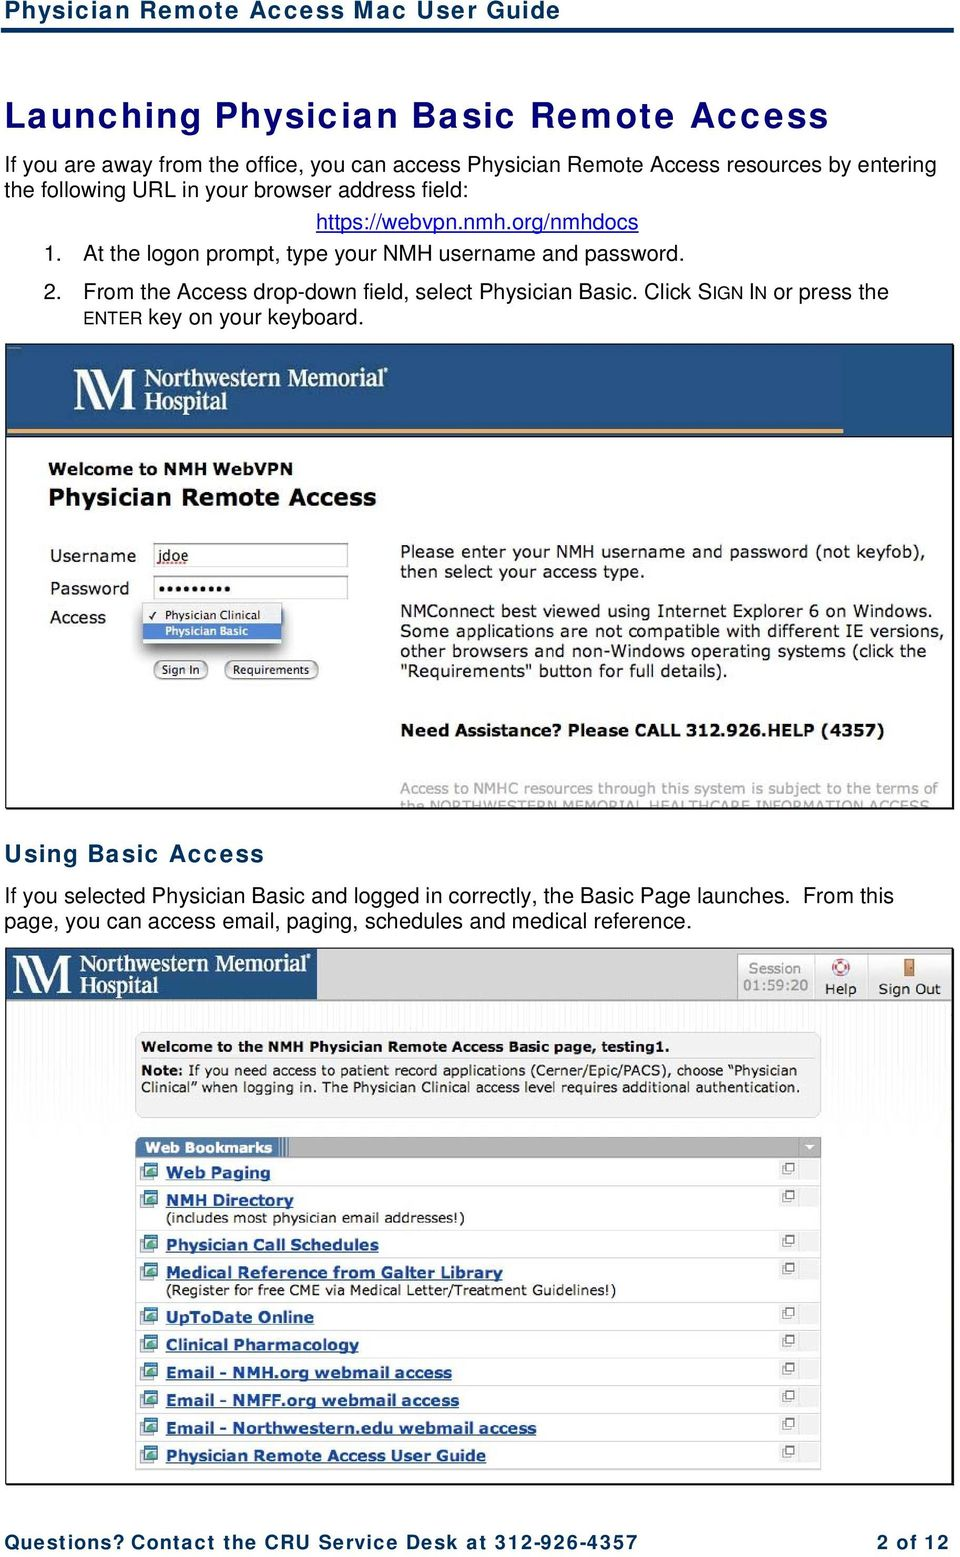 From the Access drop-down field, select Physician Basic. Click SIGN IN or press the ENTER key on your keyboard.